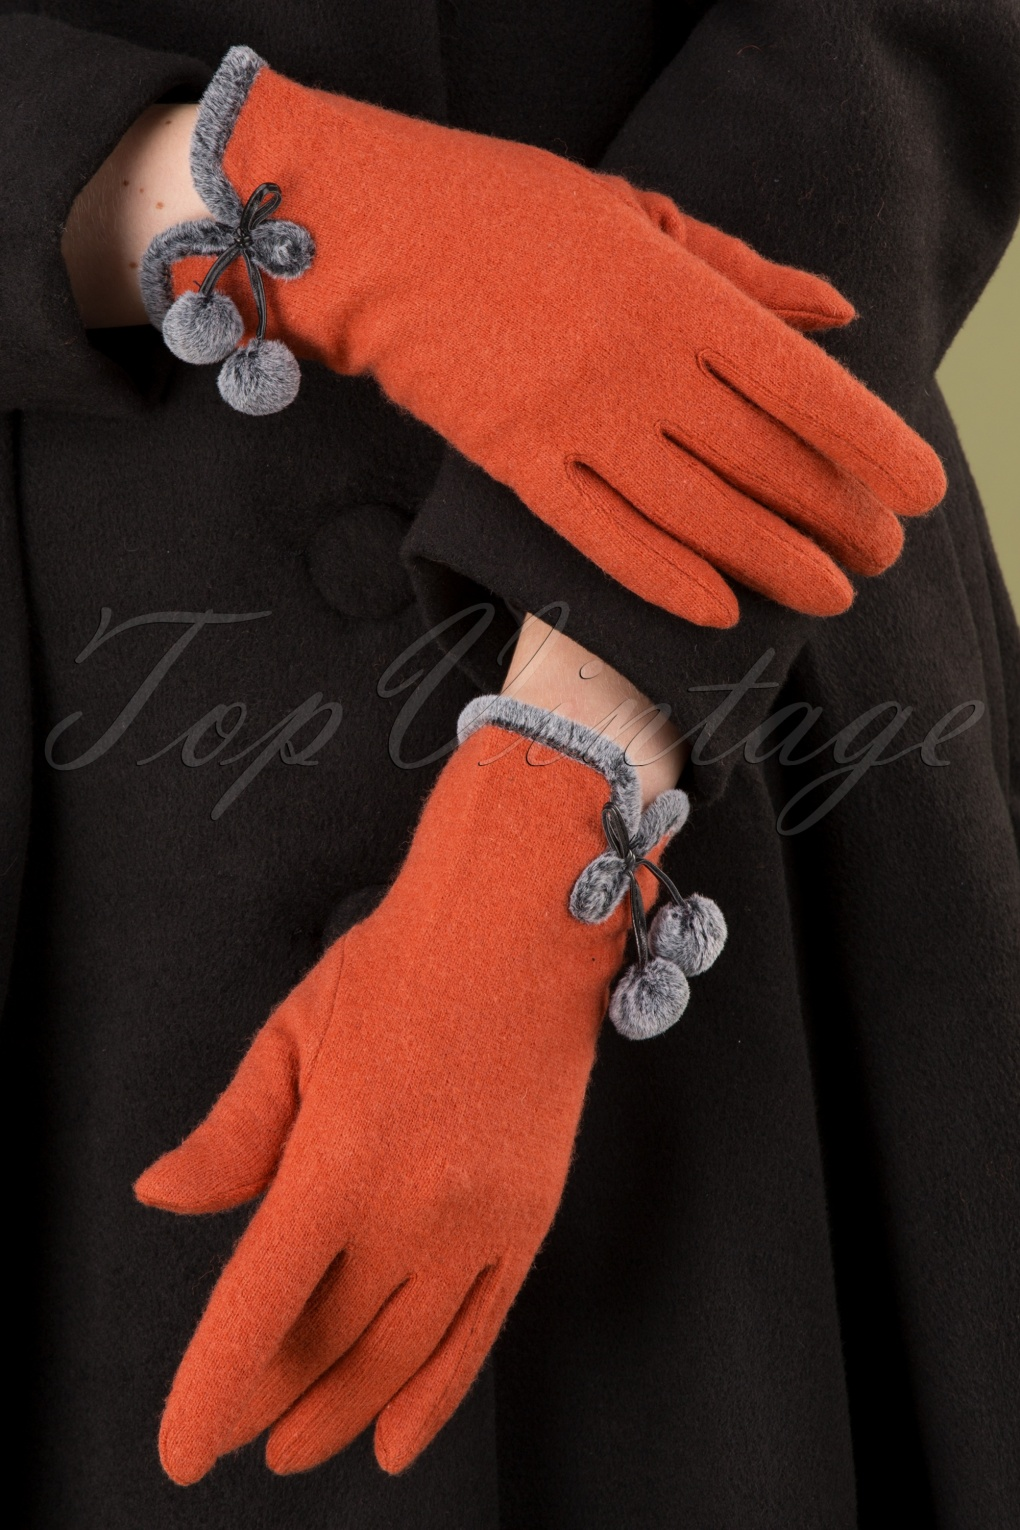 Vintage Style Gloves- Long, Wrist, Evening, Day, Leather, Lace 40s Betty Pom Pom Wool Gloves in Tangerine £23.59 AT vintagedancer.com